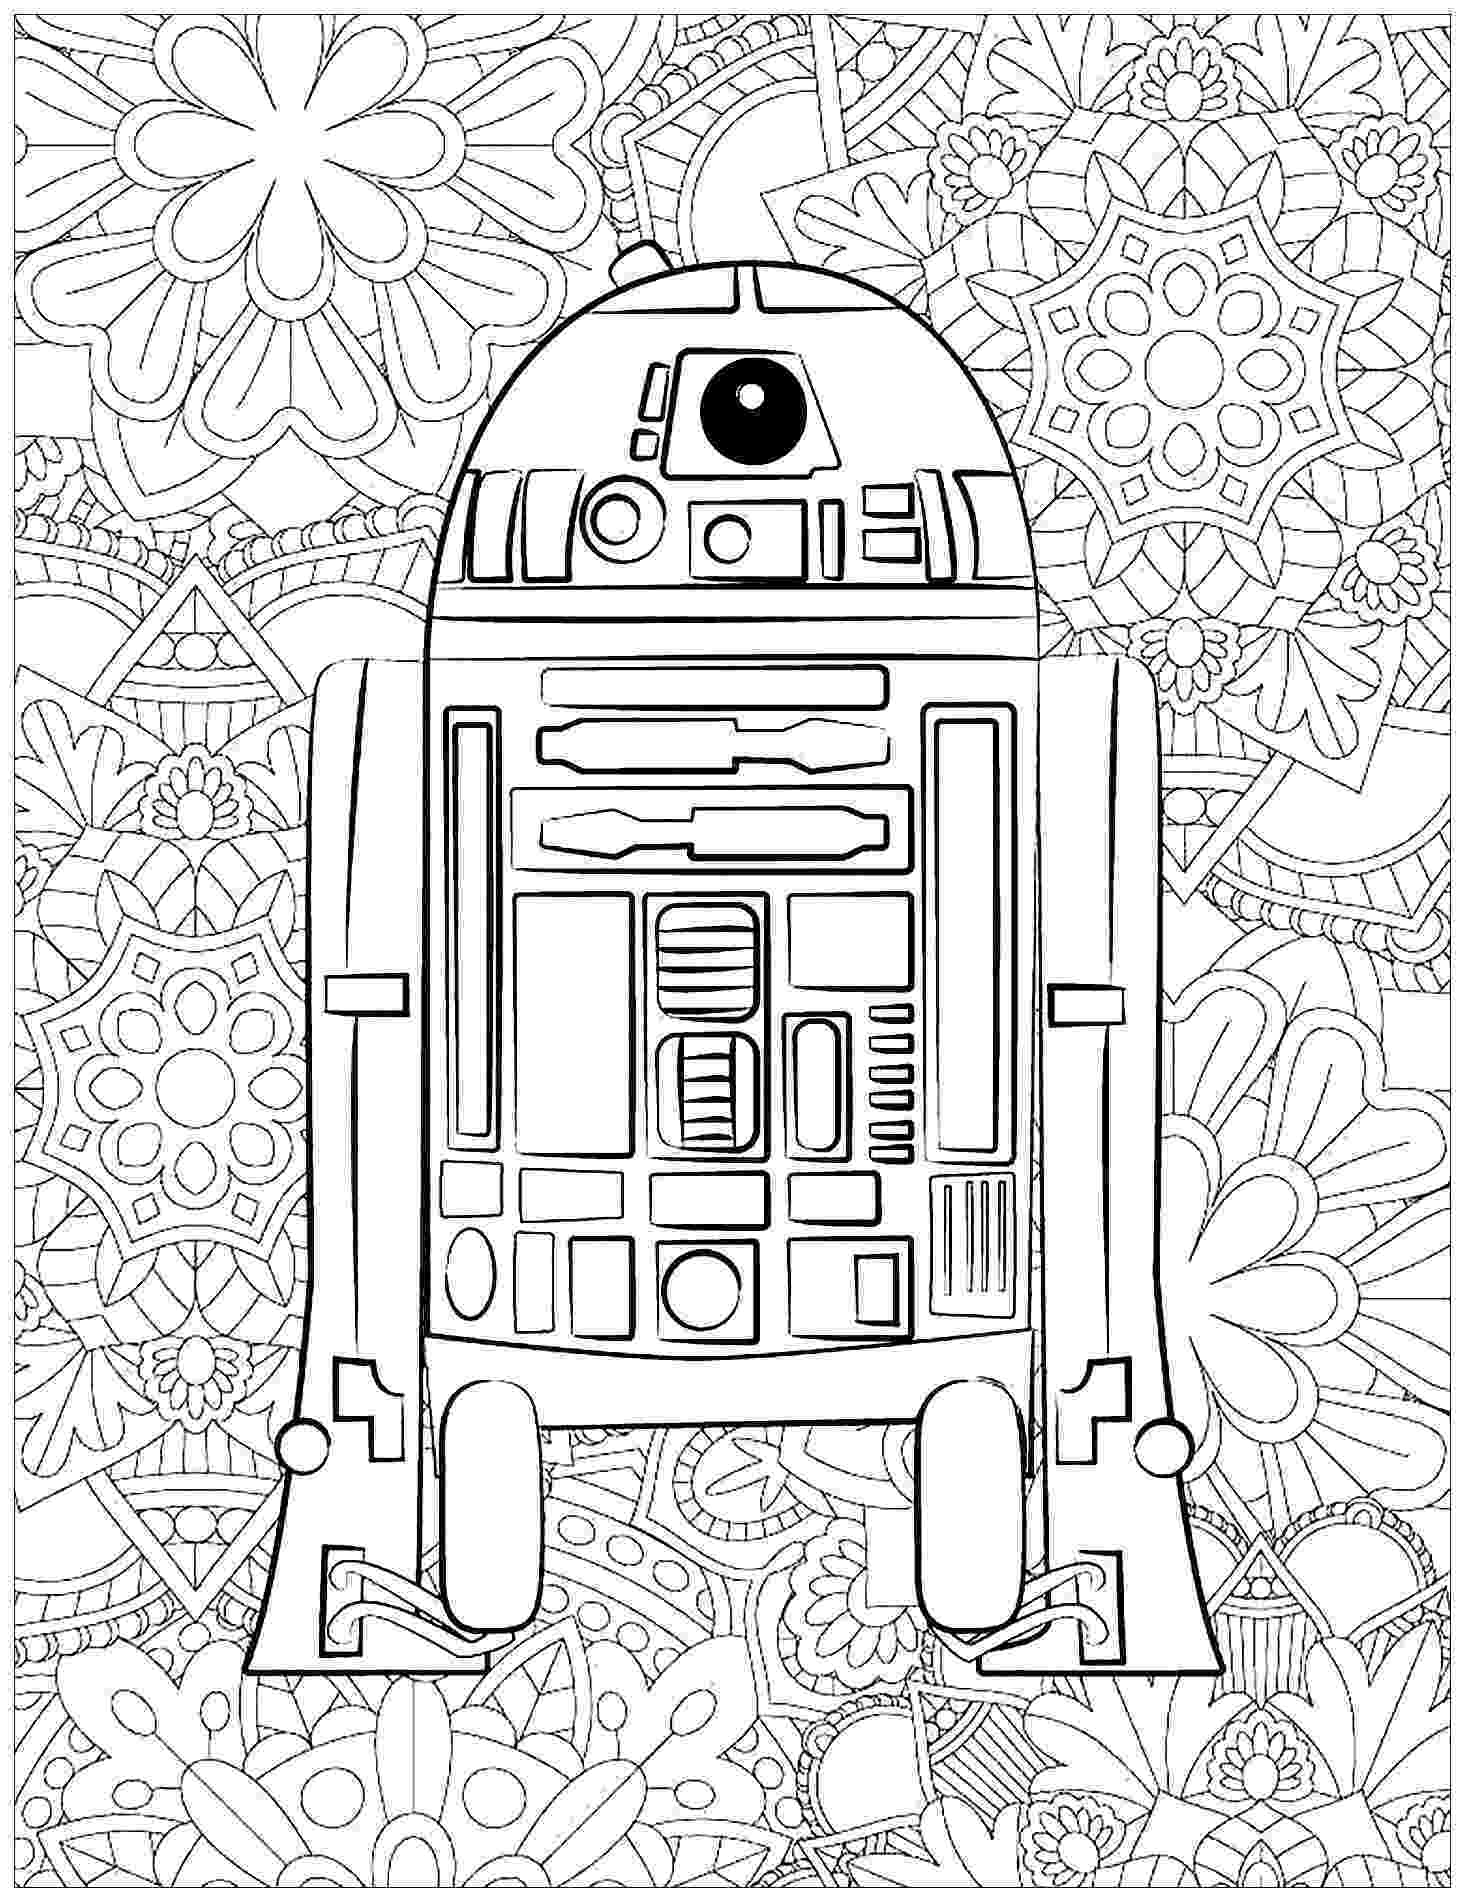 starwars colouring star wars solo free printable activity sheets any tots starwars colouring